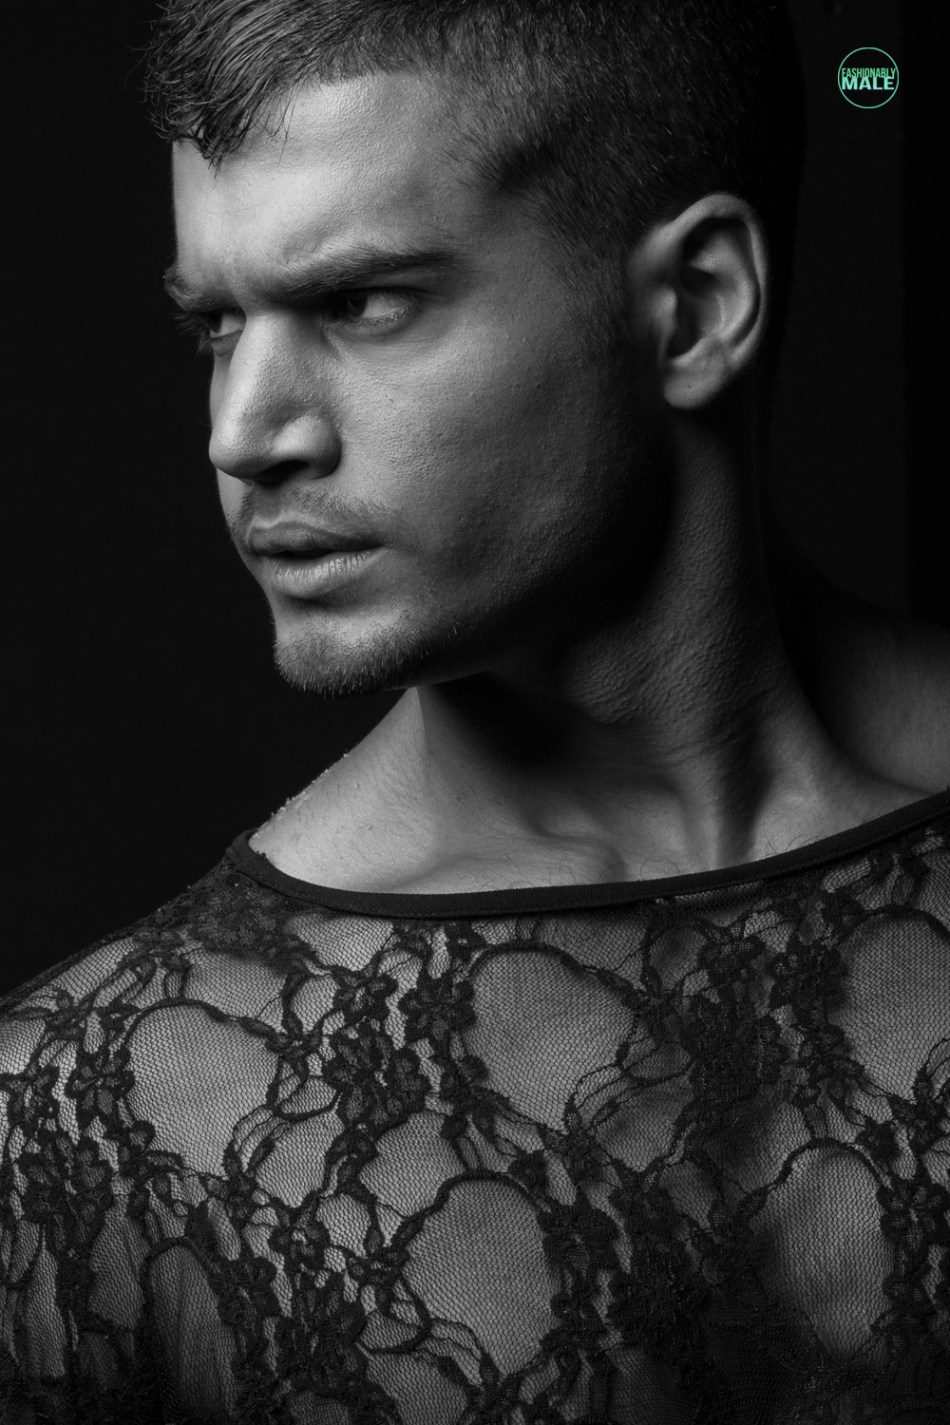 Ariel by G. Kavalero for Fashionably Male7